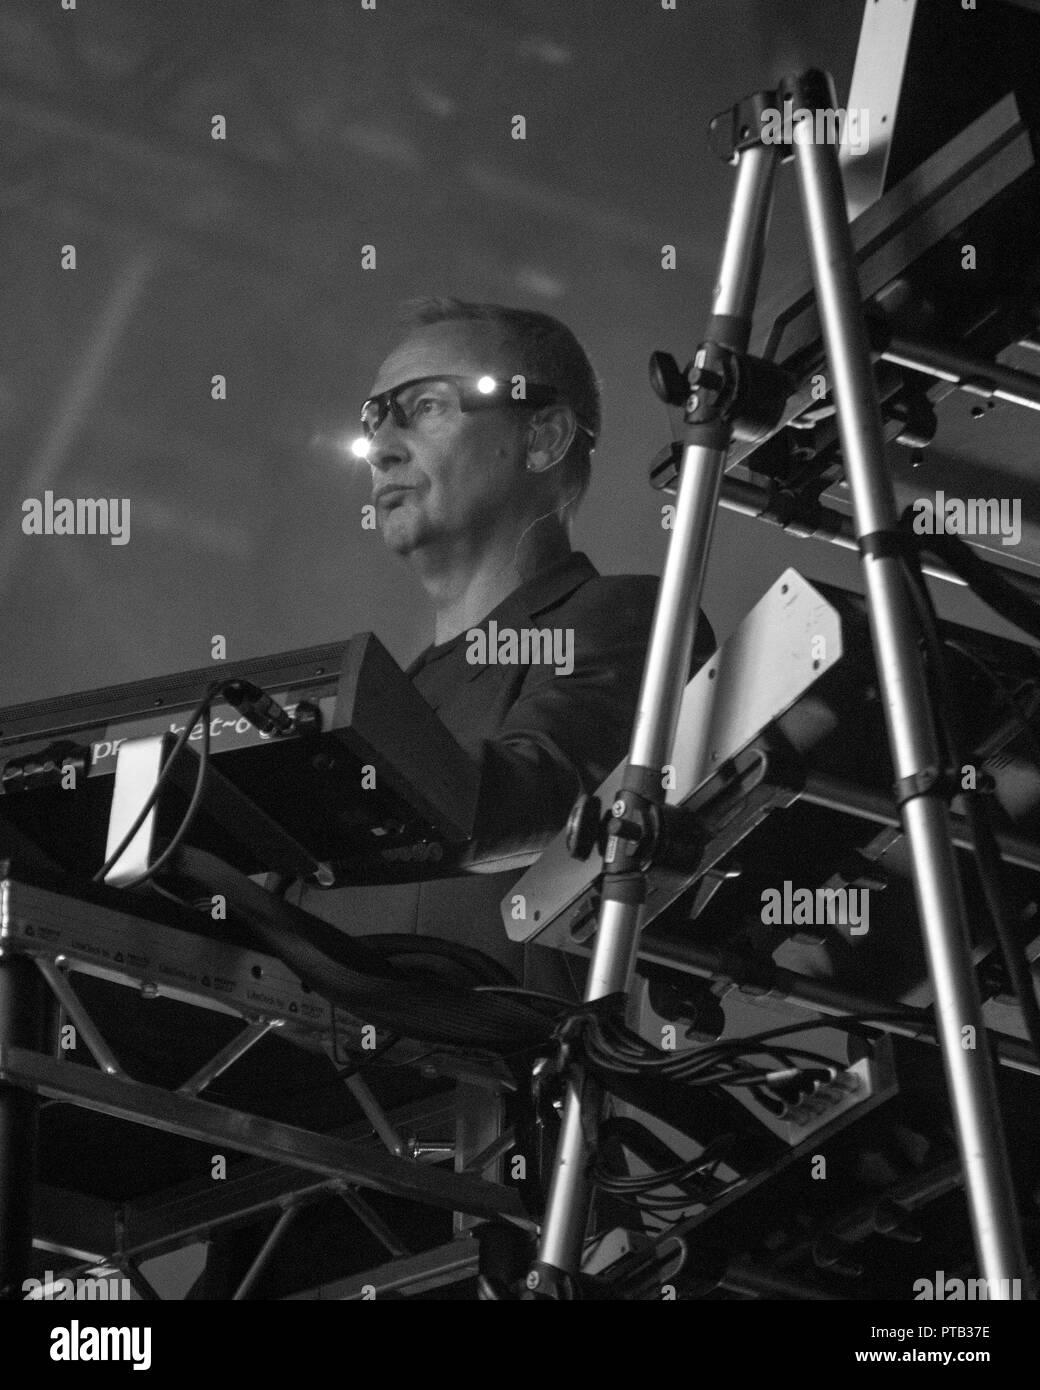 Paul Hartnoll of EDM duo, Orbital, performing at George Square, Glasgow, Scotland, on 10th August, 2018, during Festival 2018 - Stock Image